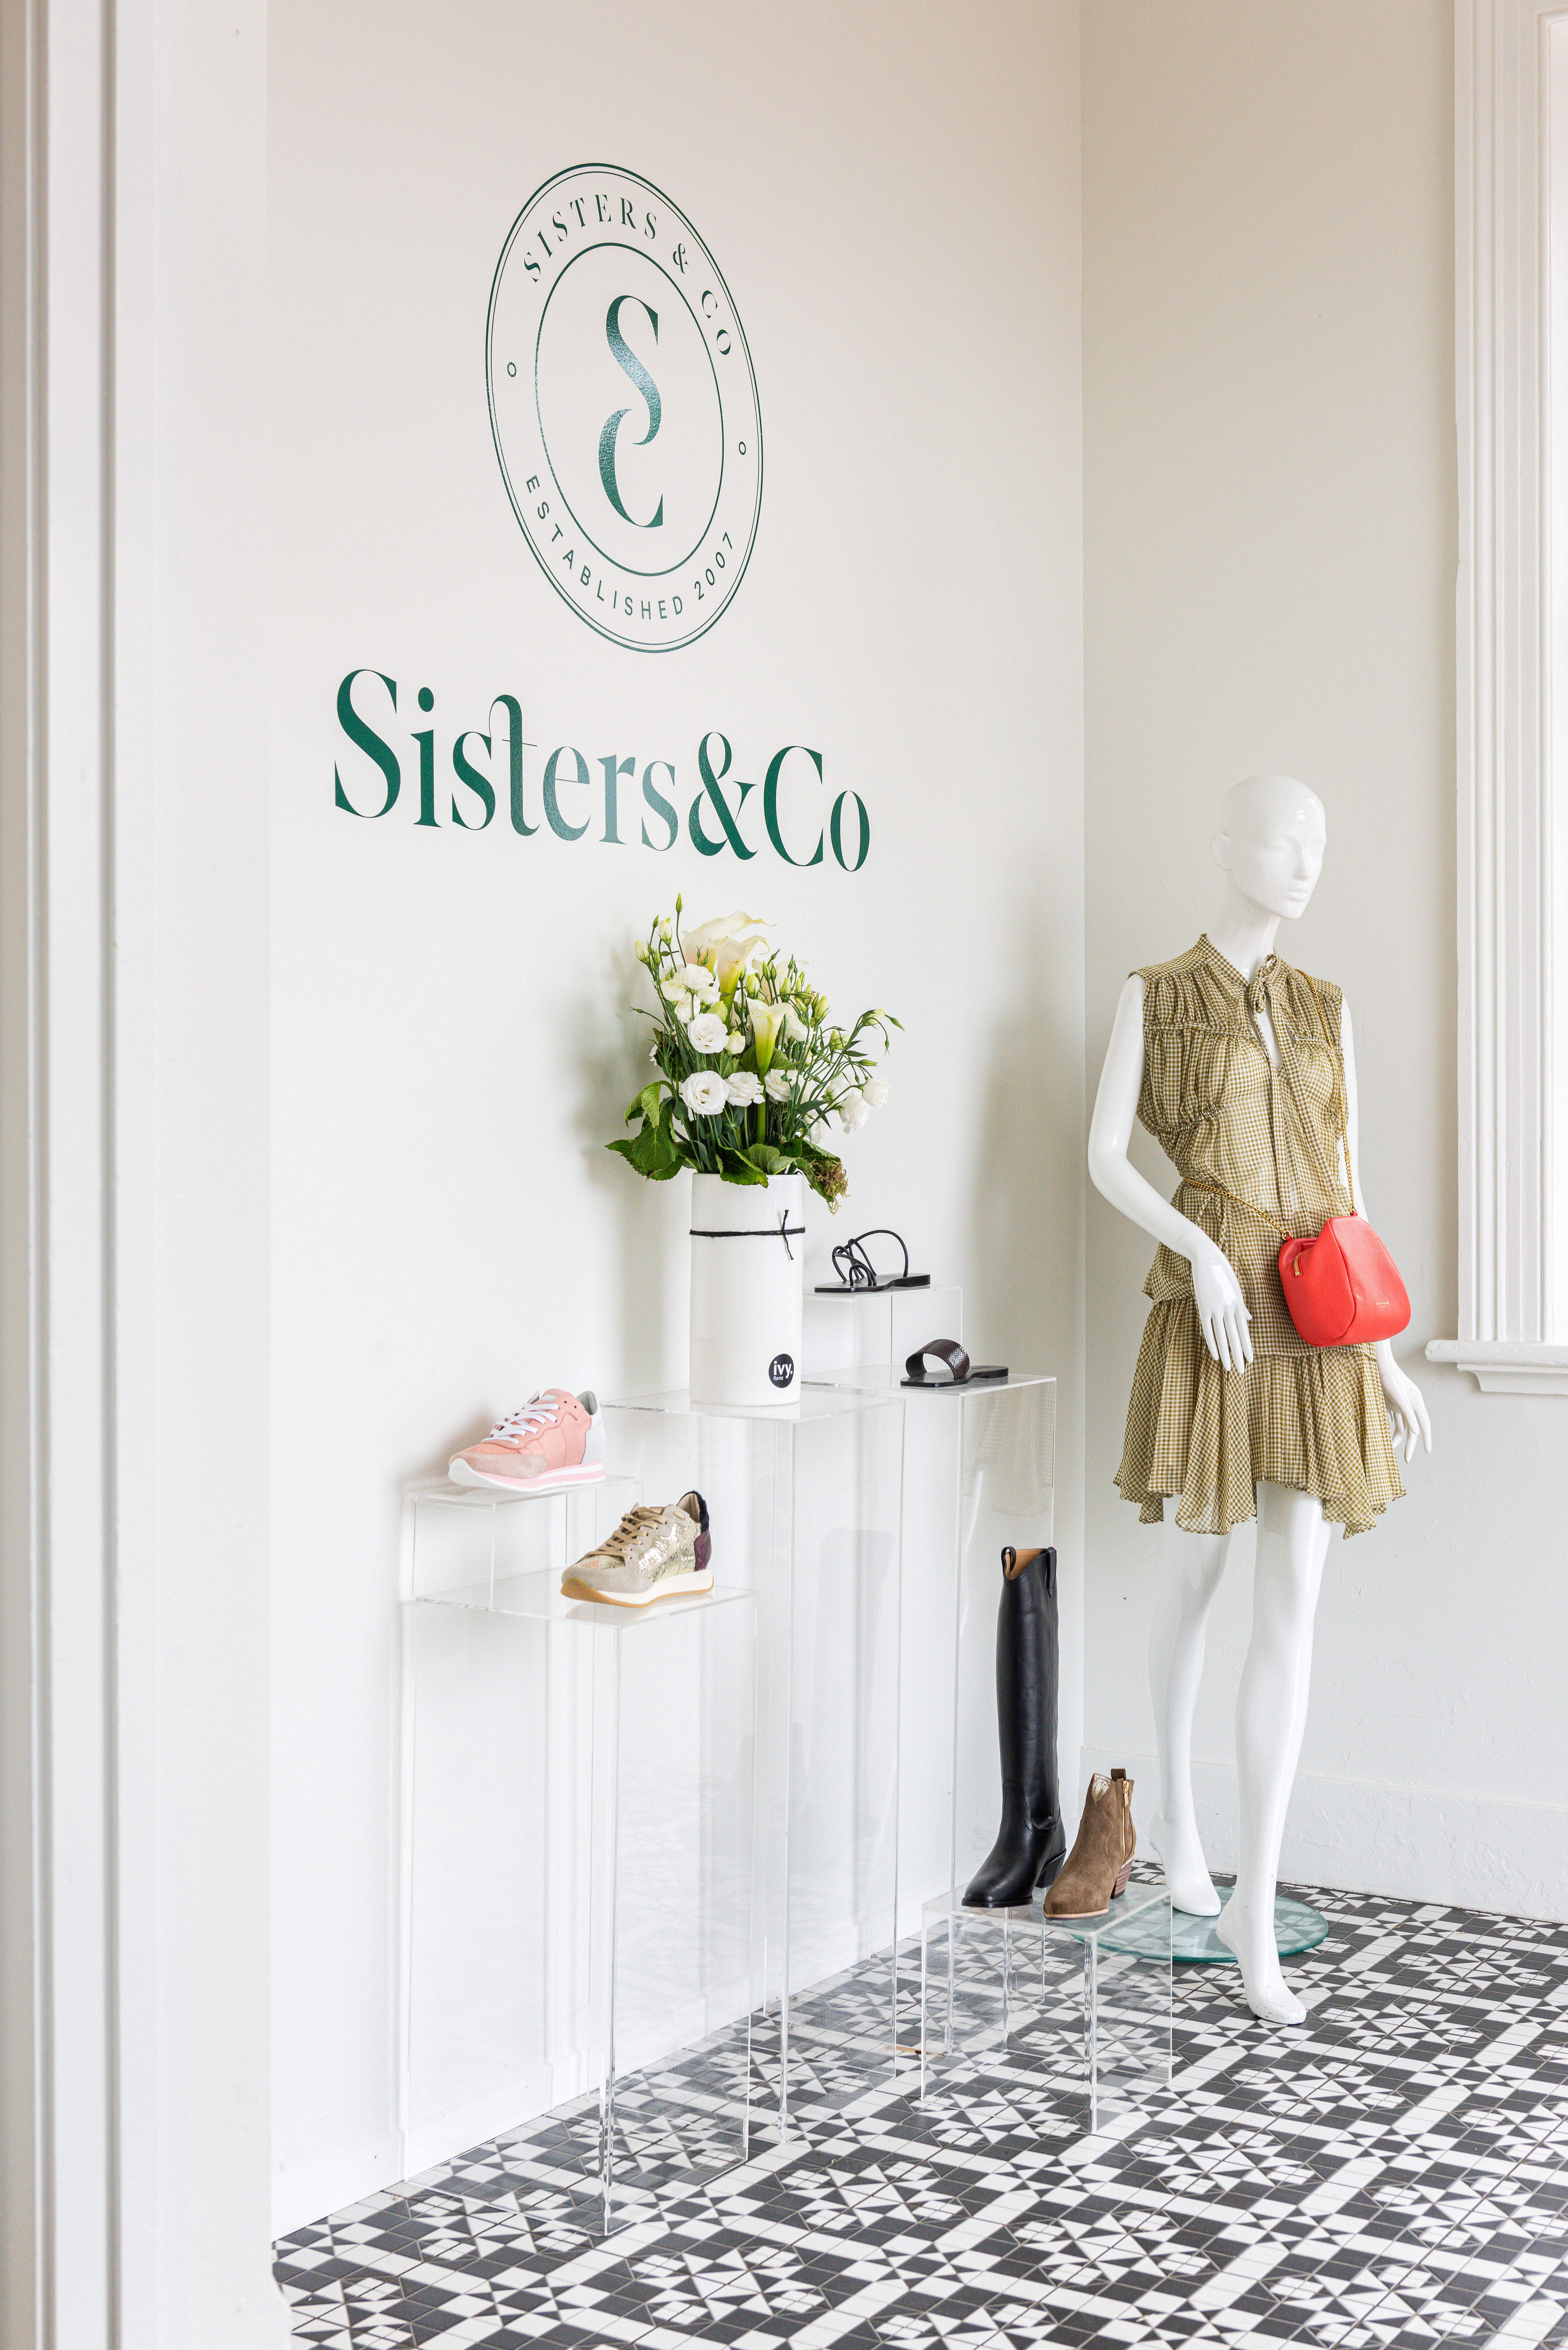 Sisters Cambridge Retail Fitout Inspace